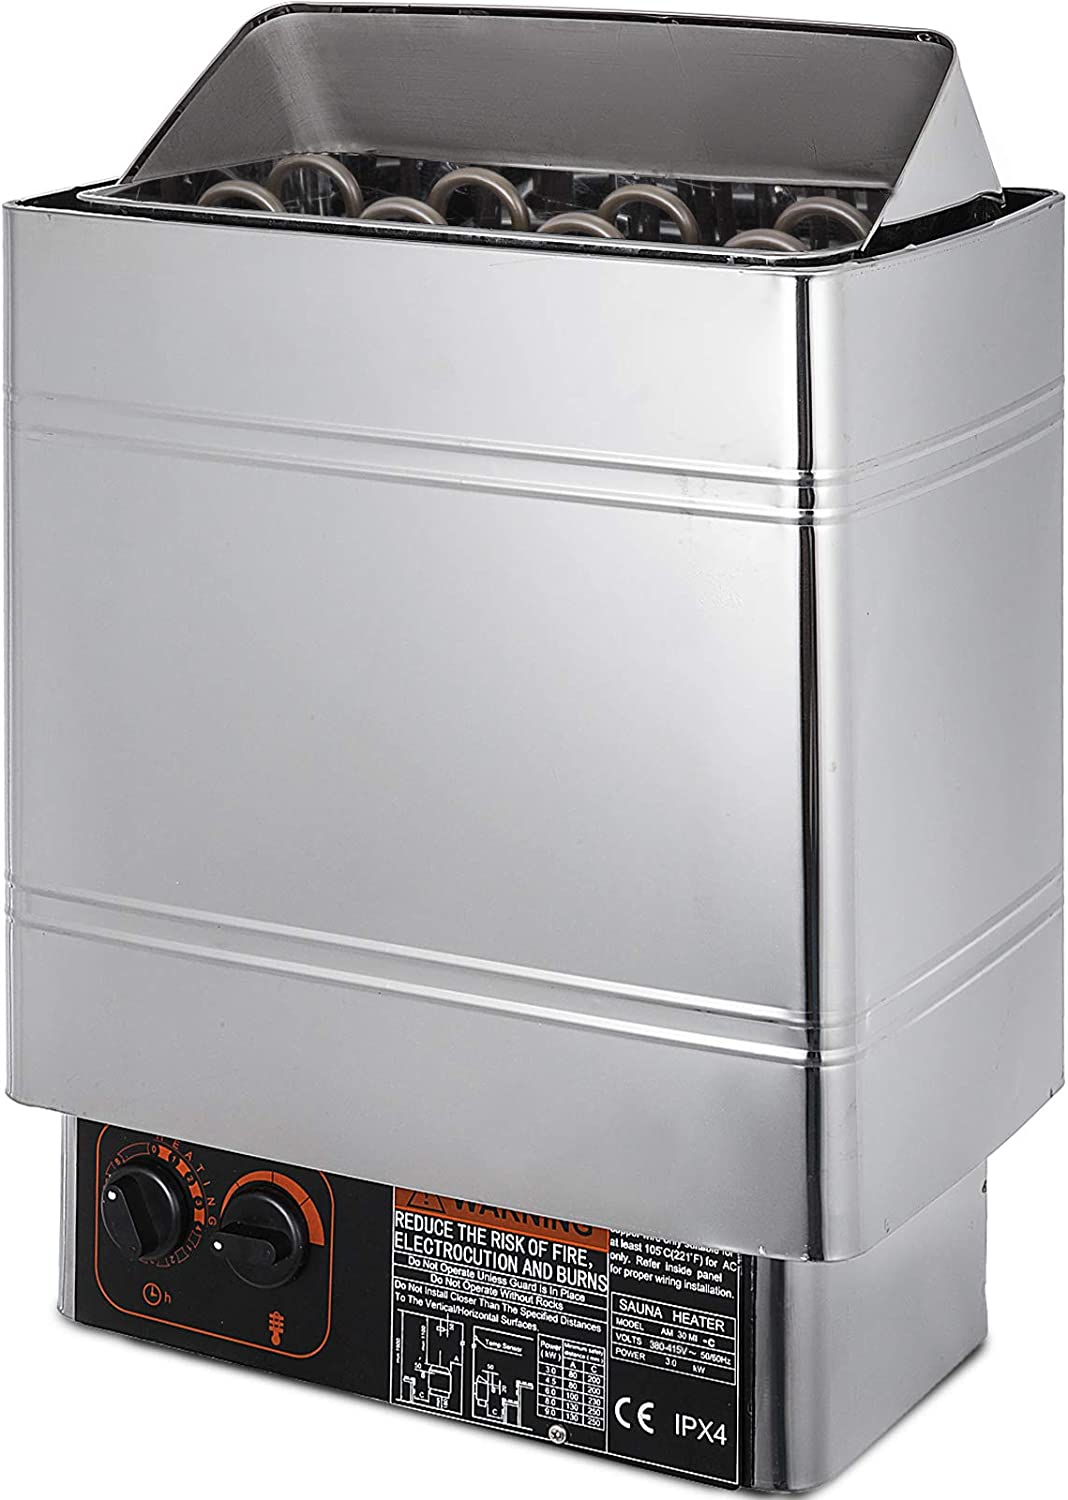 stainless steel prevent dry burn heater